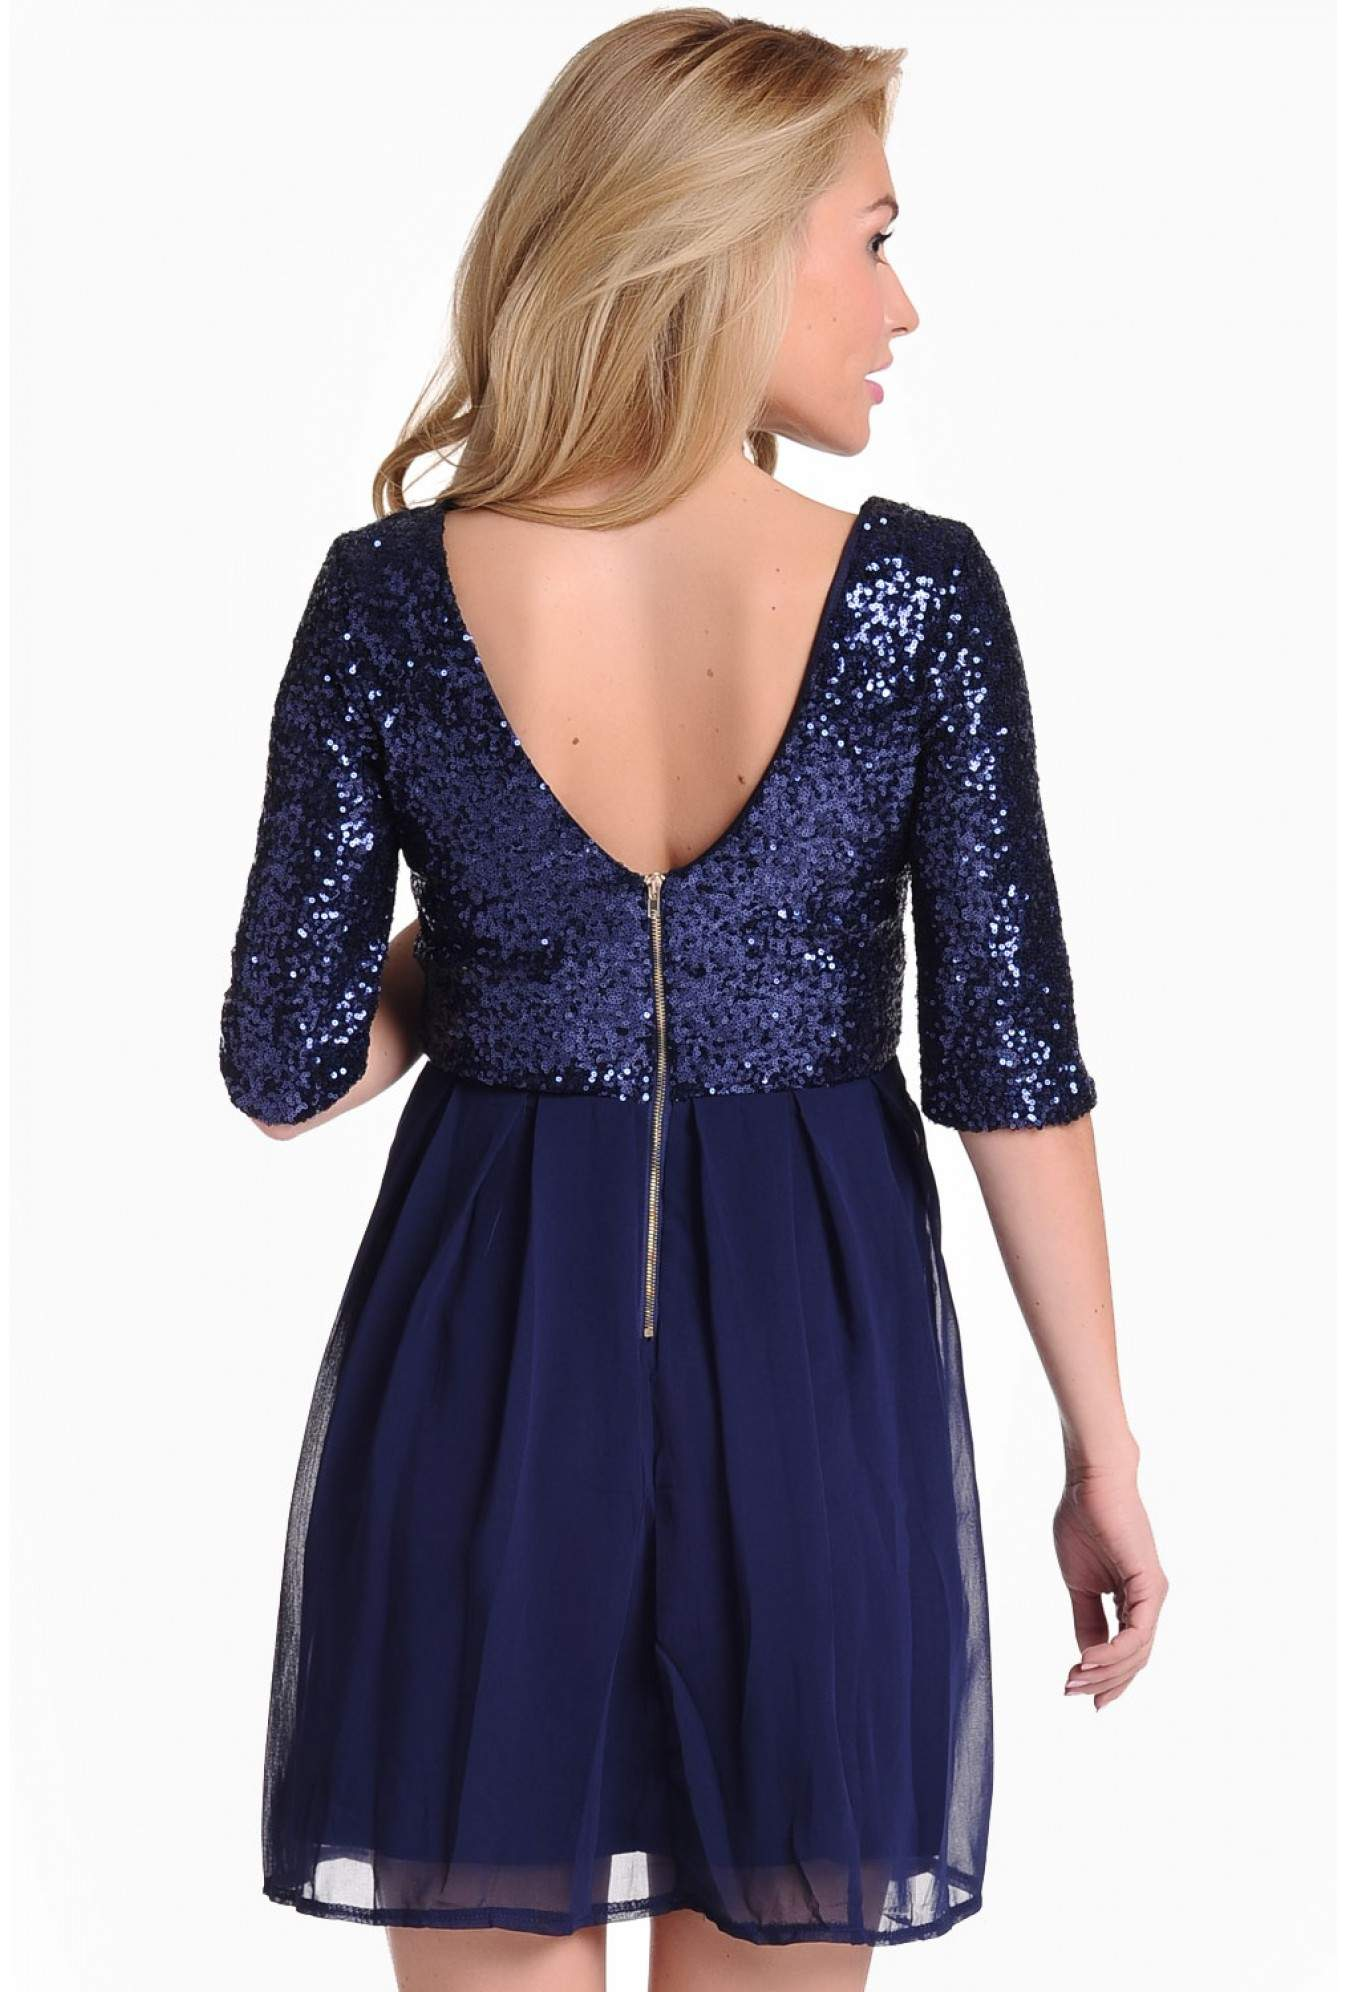 1afae2d51d03 Evita Justine Sequin Skater Dress in Navy | iCLOTHING